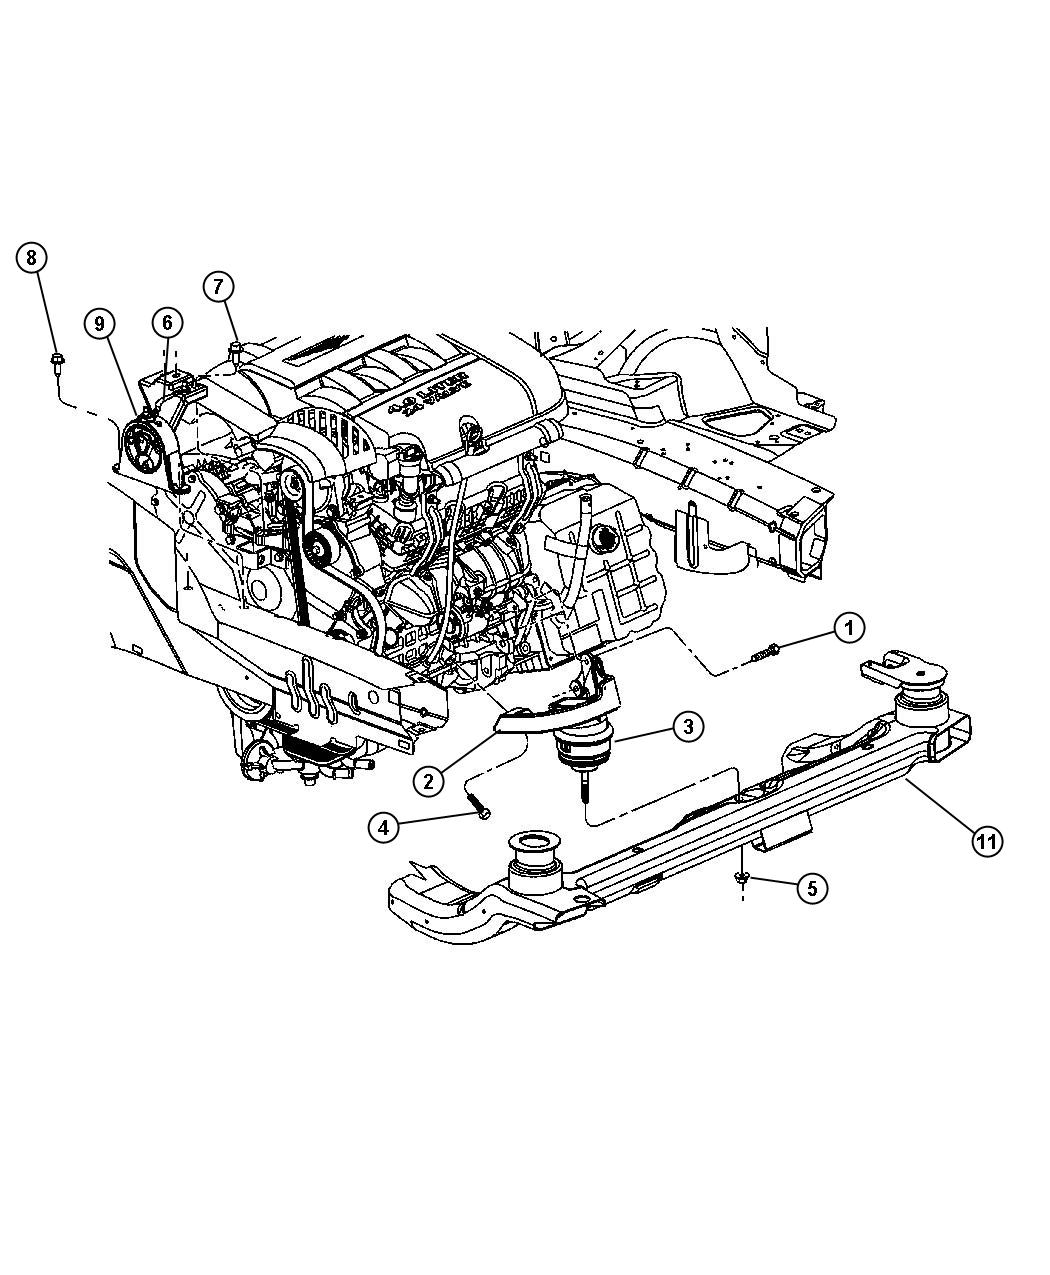 P 0900c15280054fca also T10859557 Need spark plug wiring diagram 4 6l together with Chrysler 300 5 7 Engine Diagram together with Ranger 3 0 Vacuum Diagram furthermore Spark Plug Diagram 1998 Ford Econoline Van 4 6. on firing order diagram 05 ford 5 4